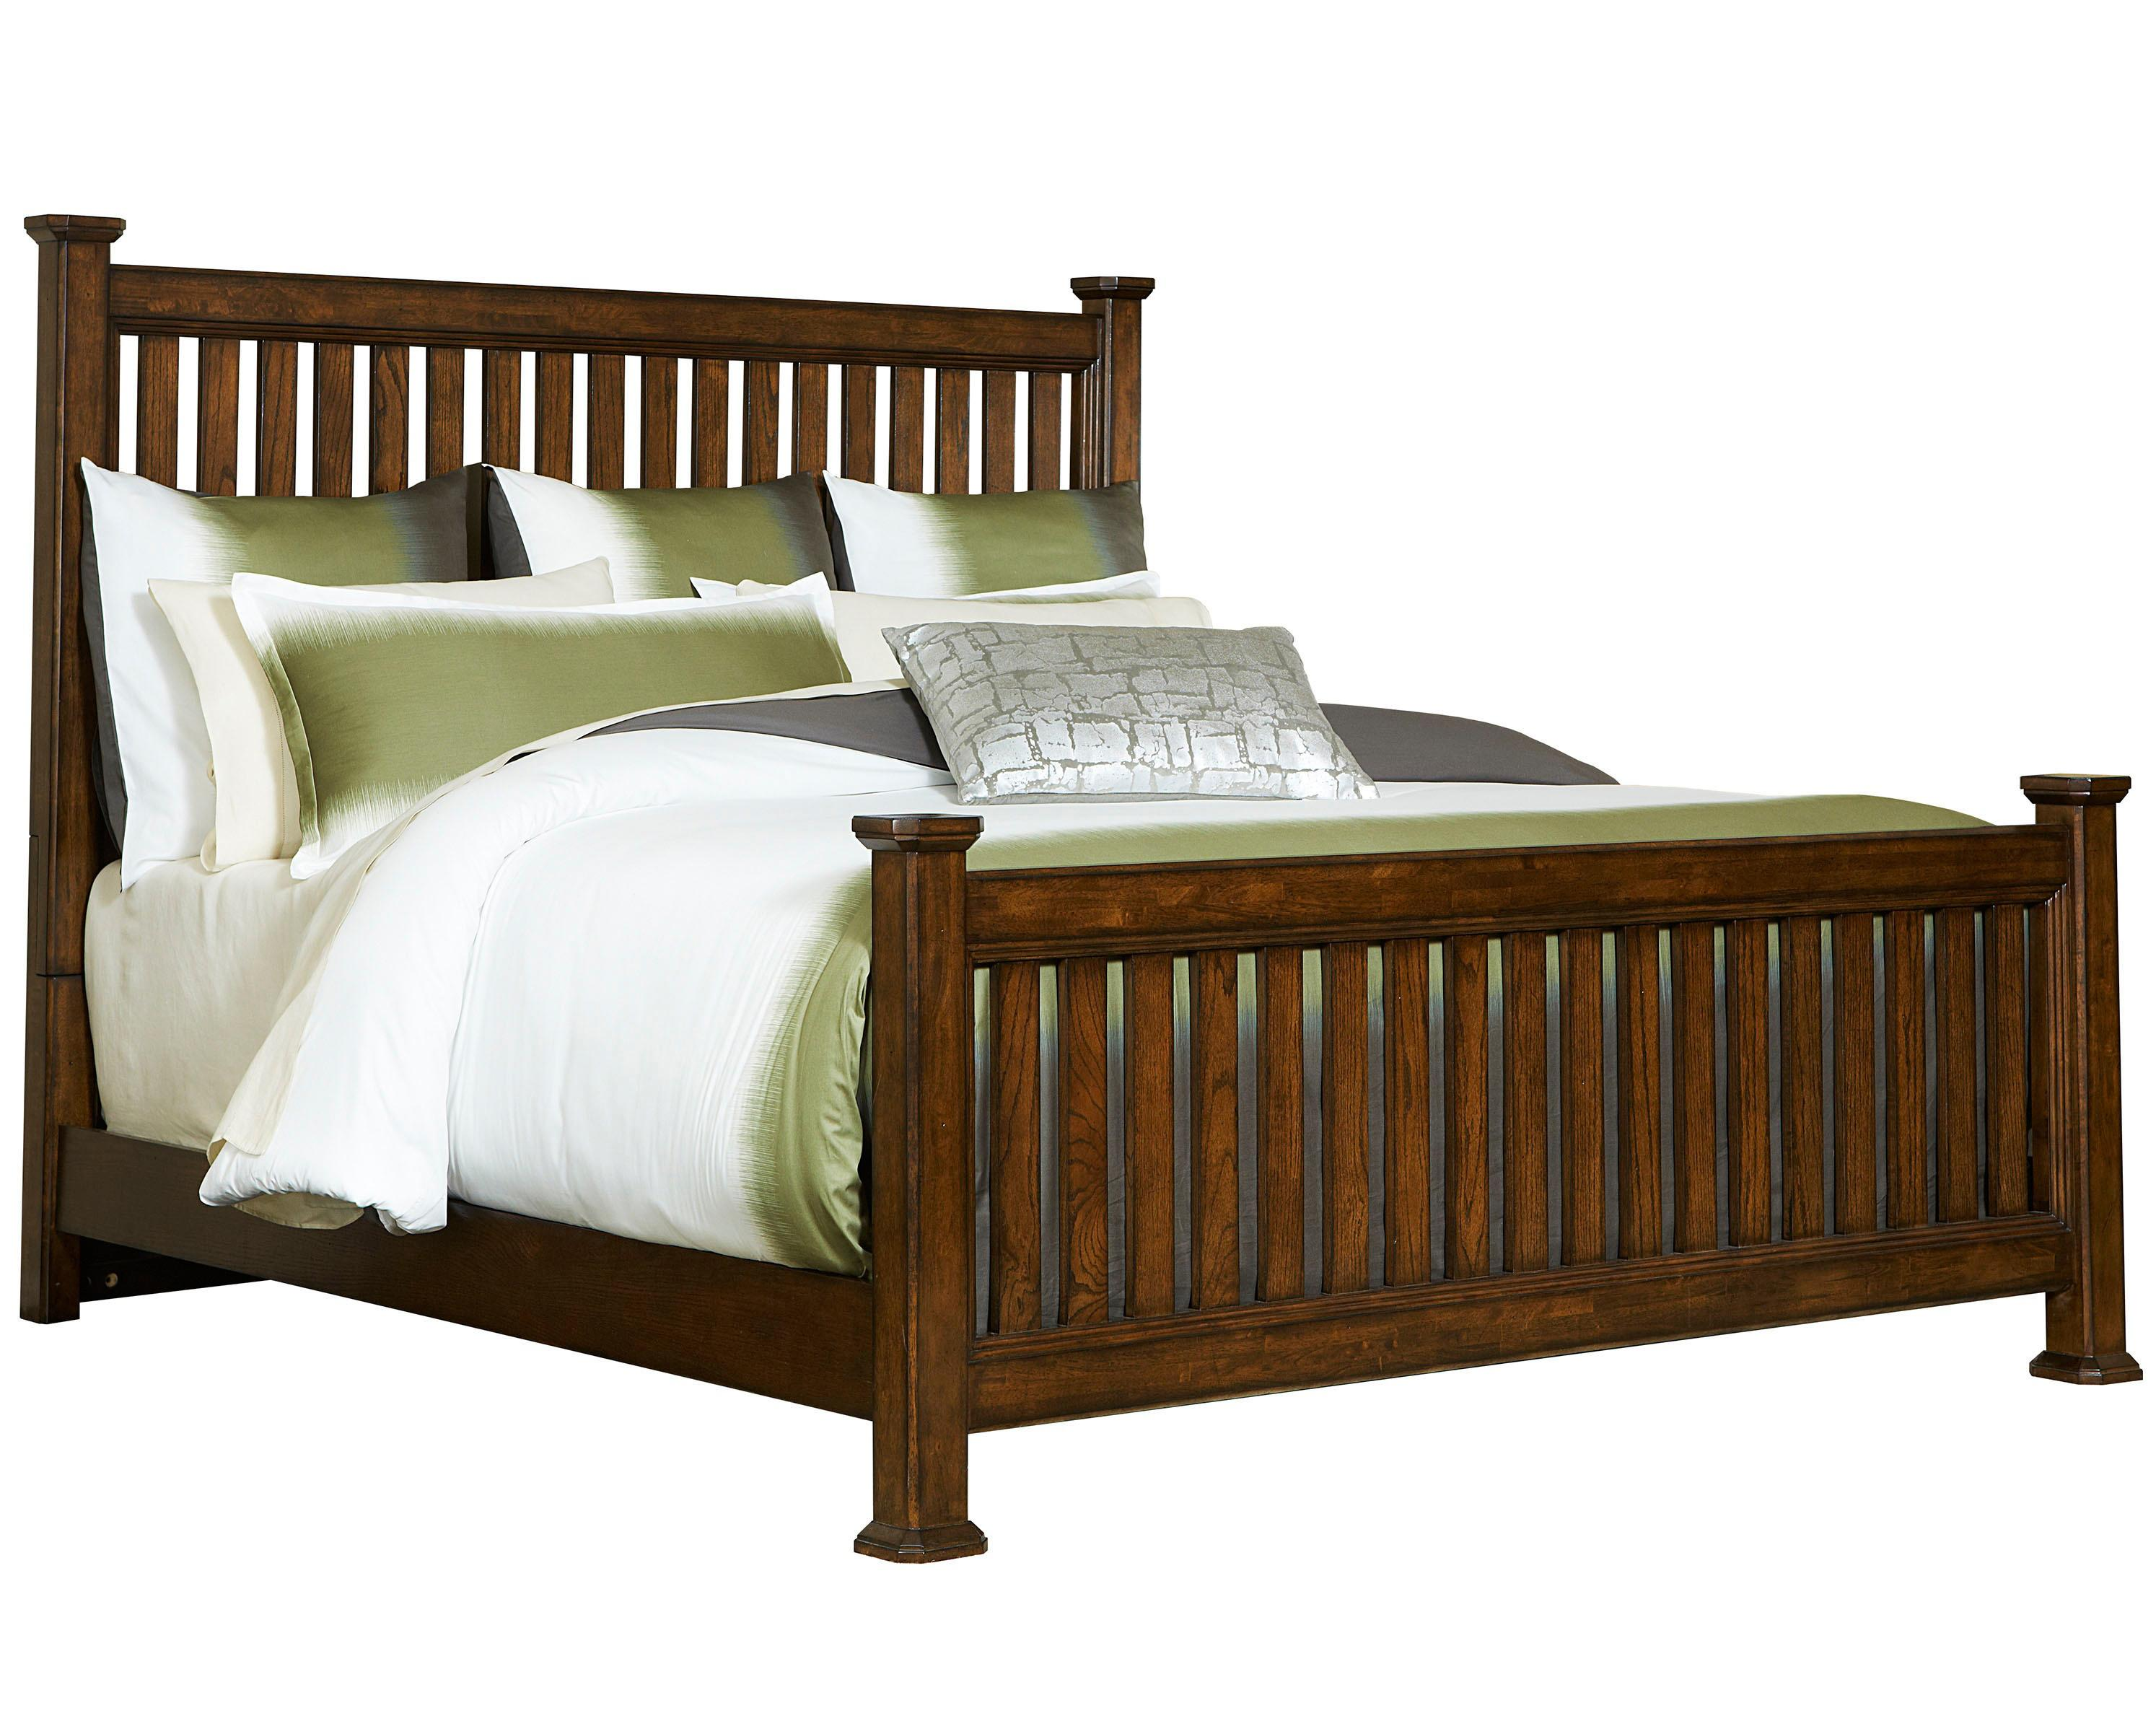 Broyhill Furniture Estes Park King Slat Poster Bed - Item Number: 4364-262+263+460